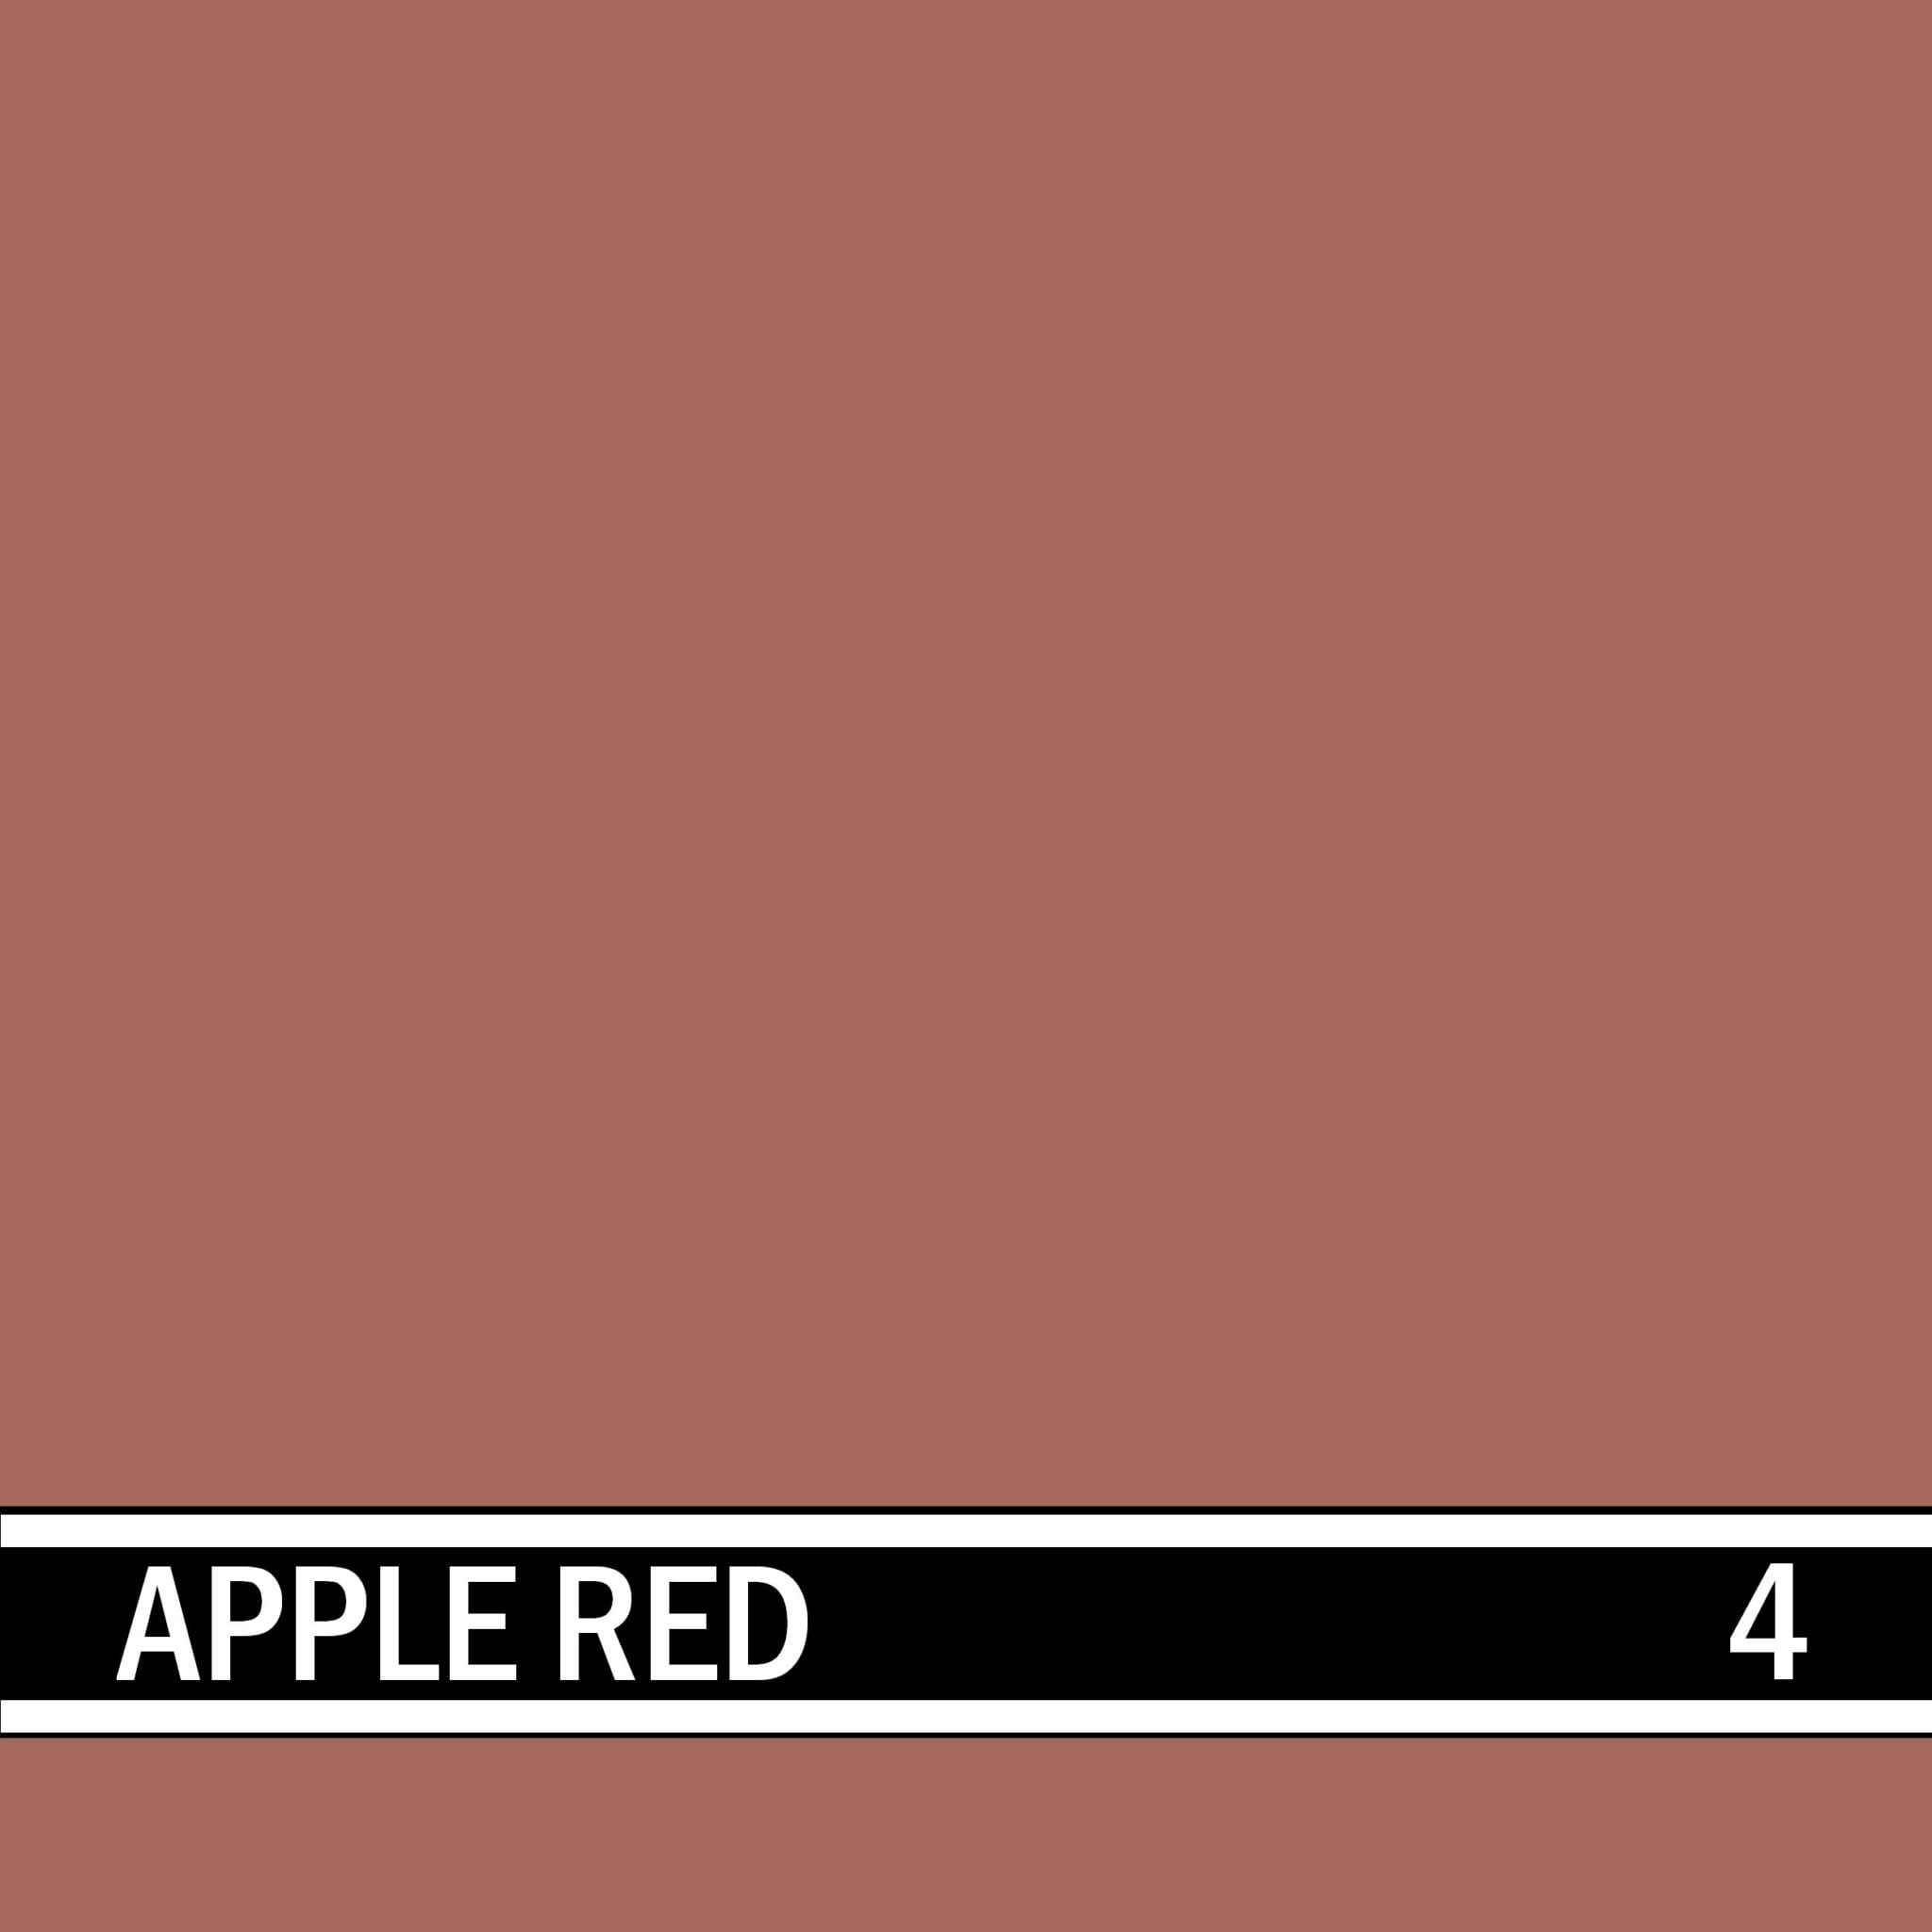 Apple Red integral concrete color for stamped concrete and decorative colored concrete